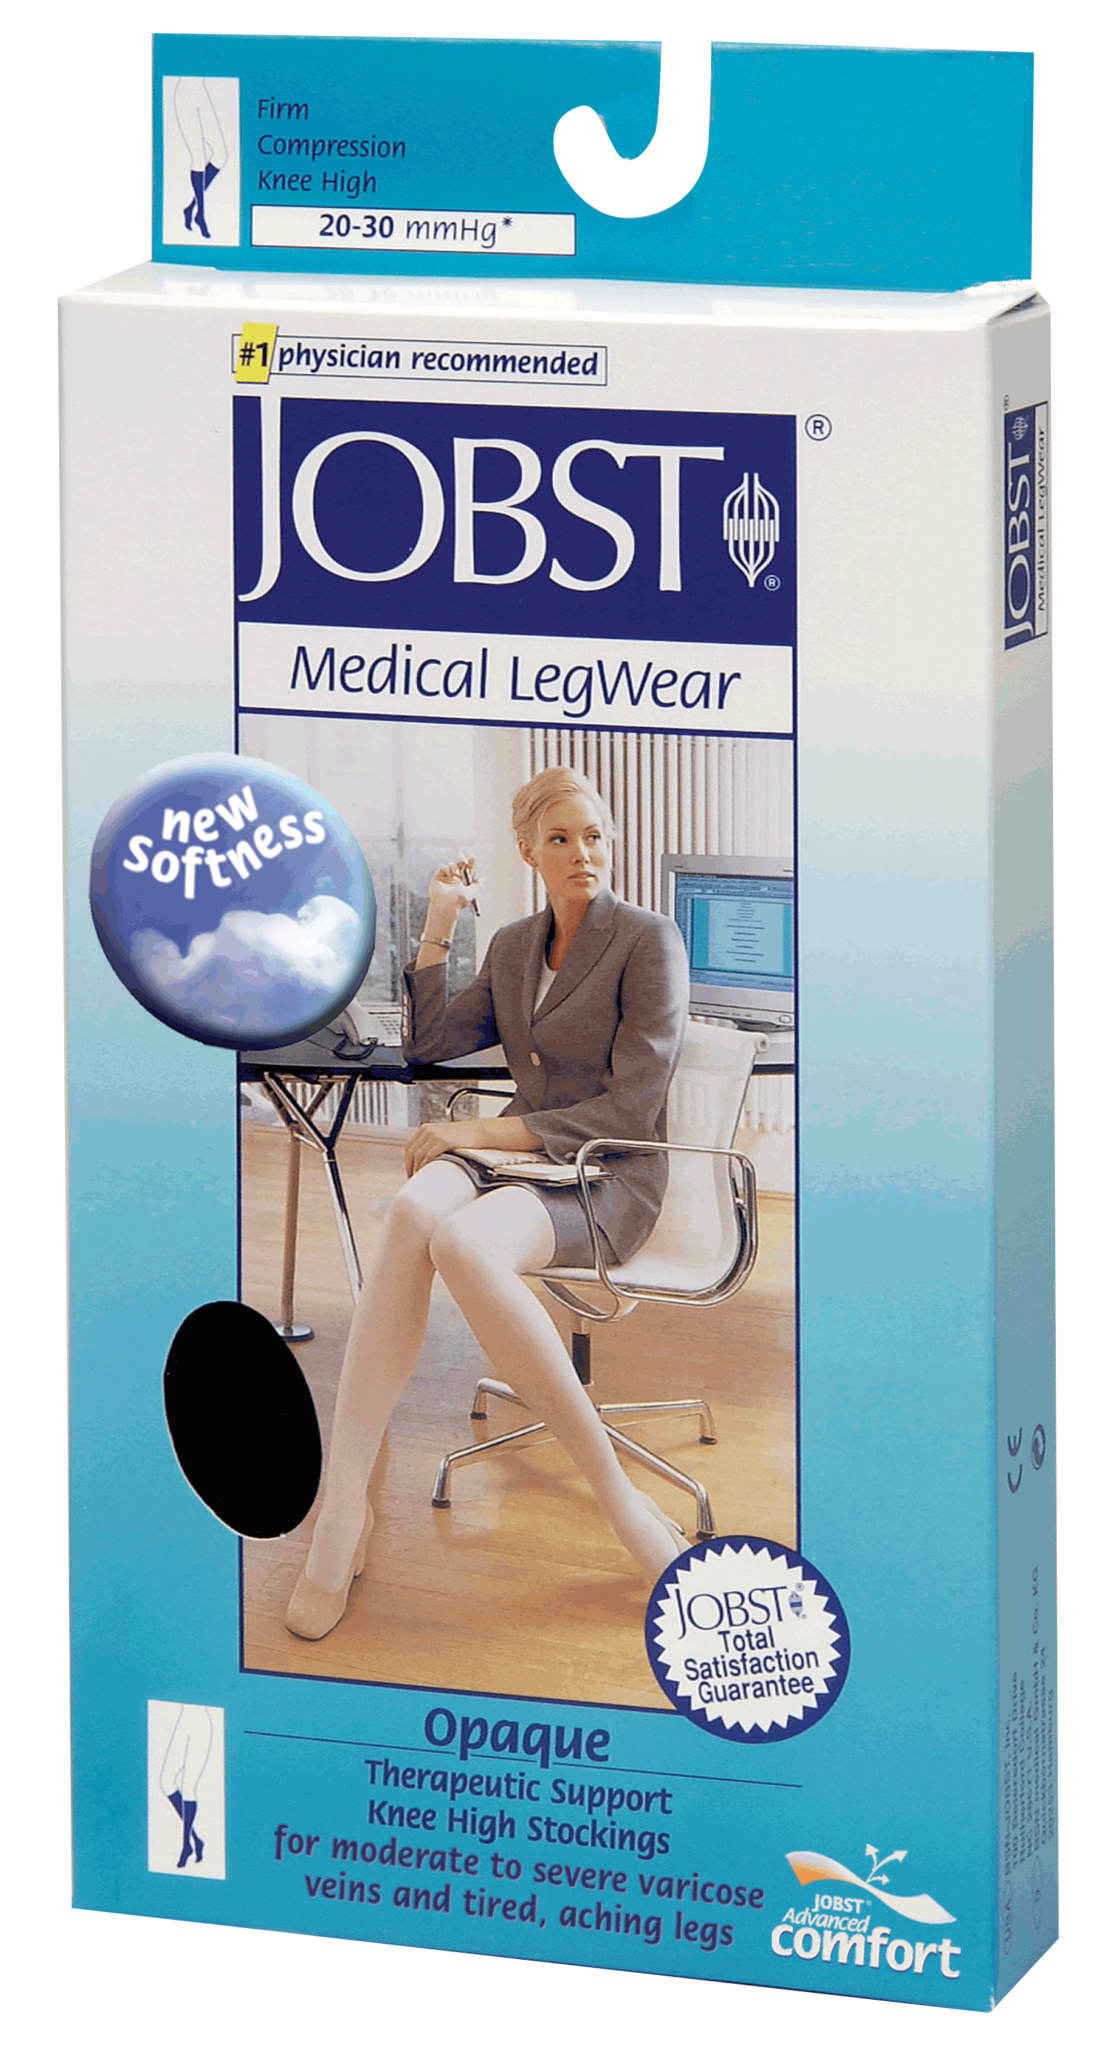 PR/1 KneeHigh Firm Opaque Compression Stockings Small